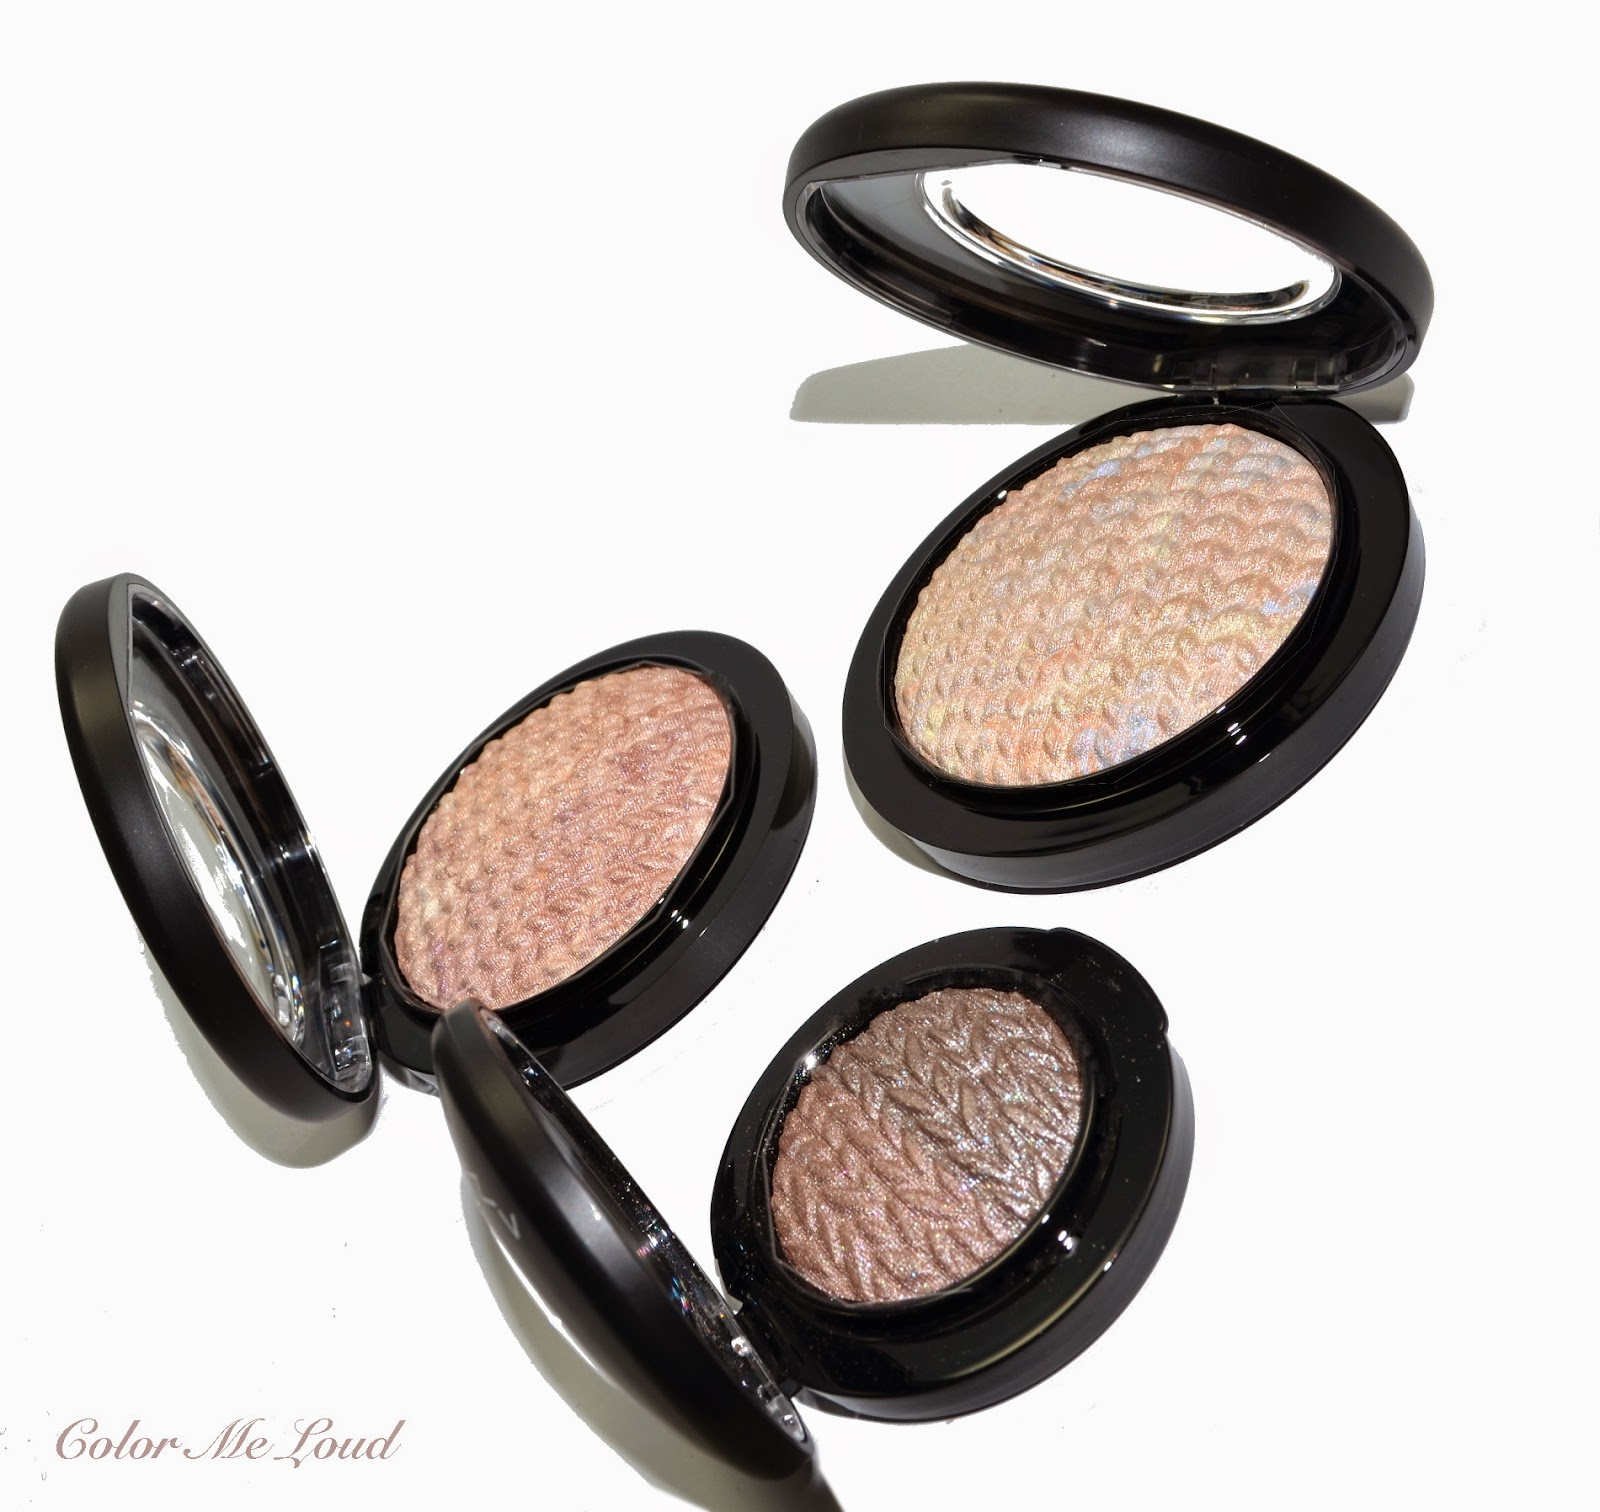 MAC Lightness of Being, Mineralize Skinfinish in Perfect Topping, Lightscapade and Eye Shadow in Force of Nature